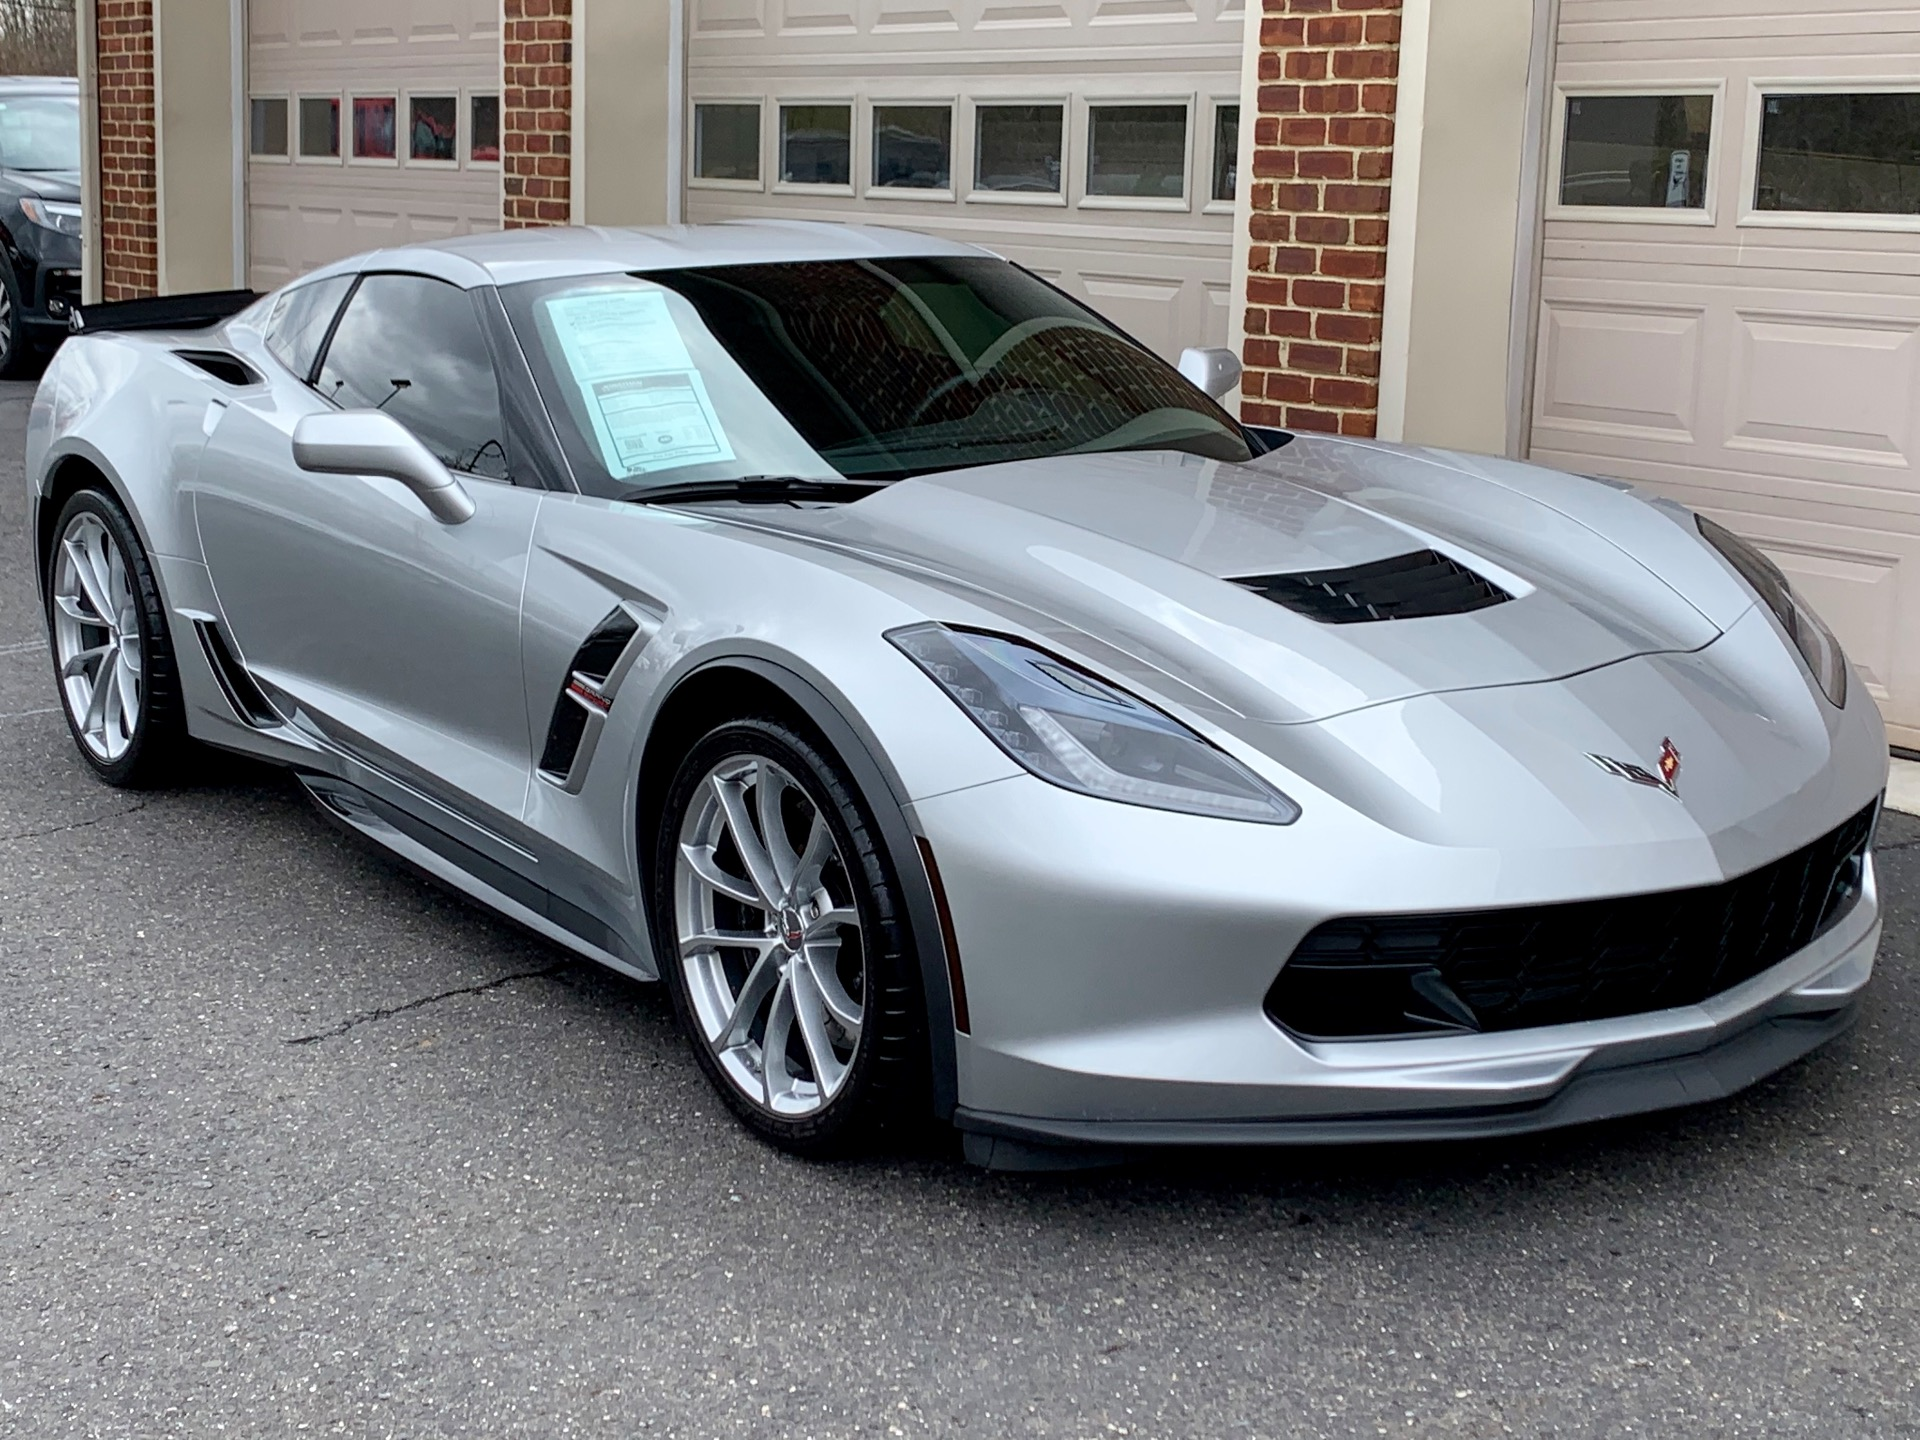 Used-2017-Chevrolet-Corvette-Grand-Sport